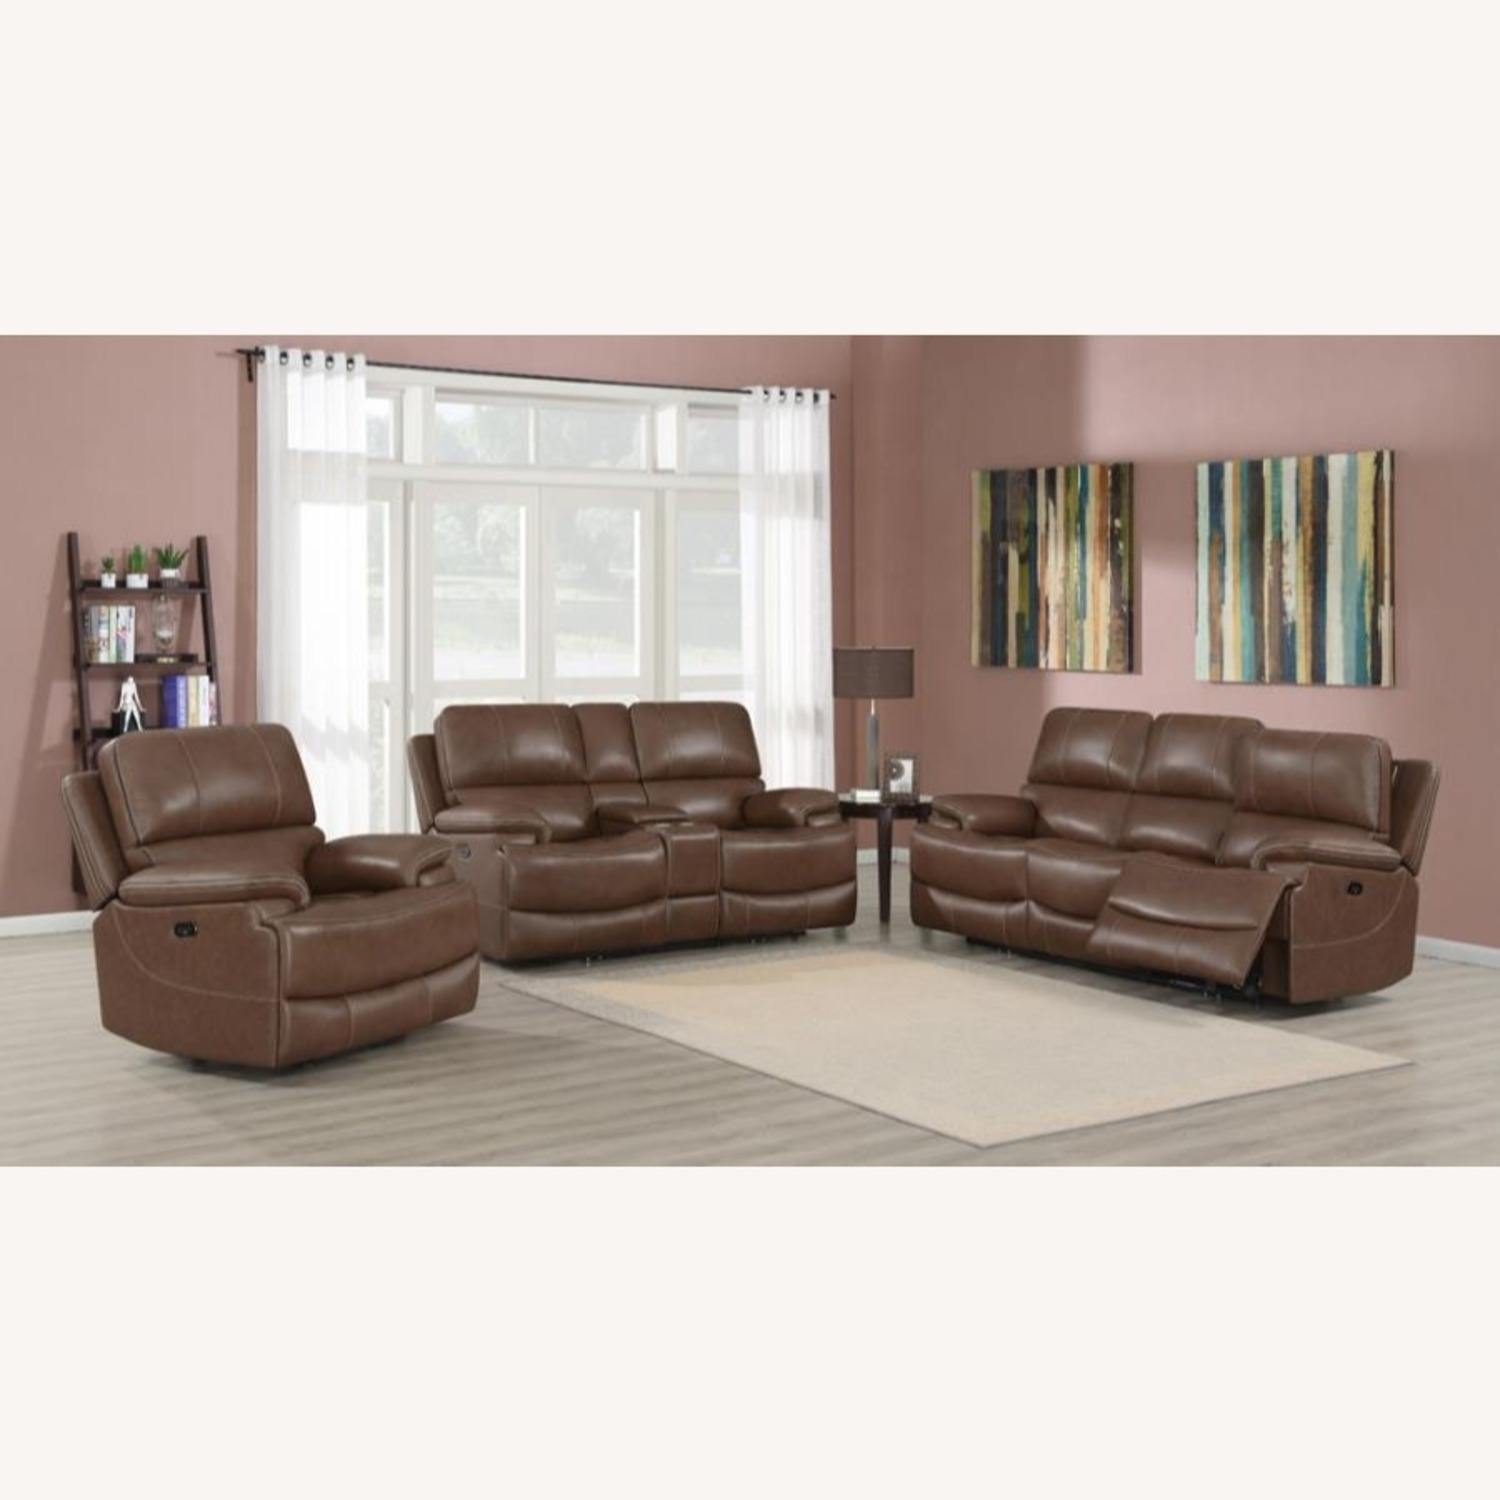 Power Loveseat In Saddle Brown W/ Reclining Seats - image-6